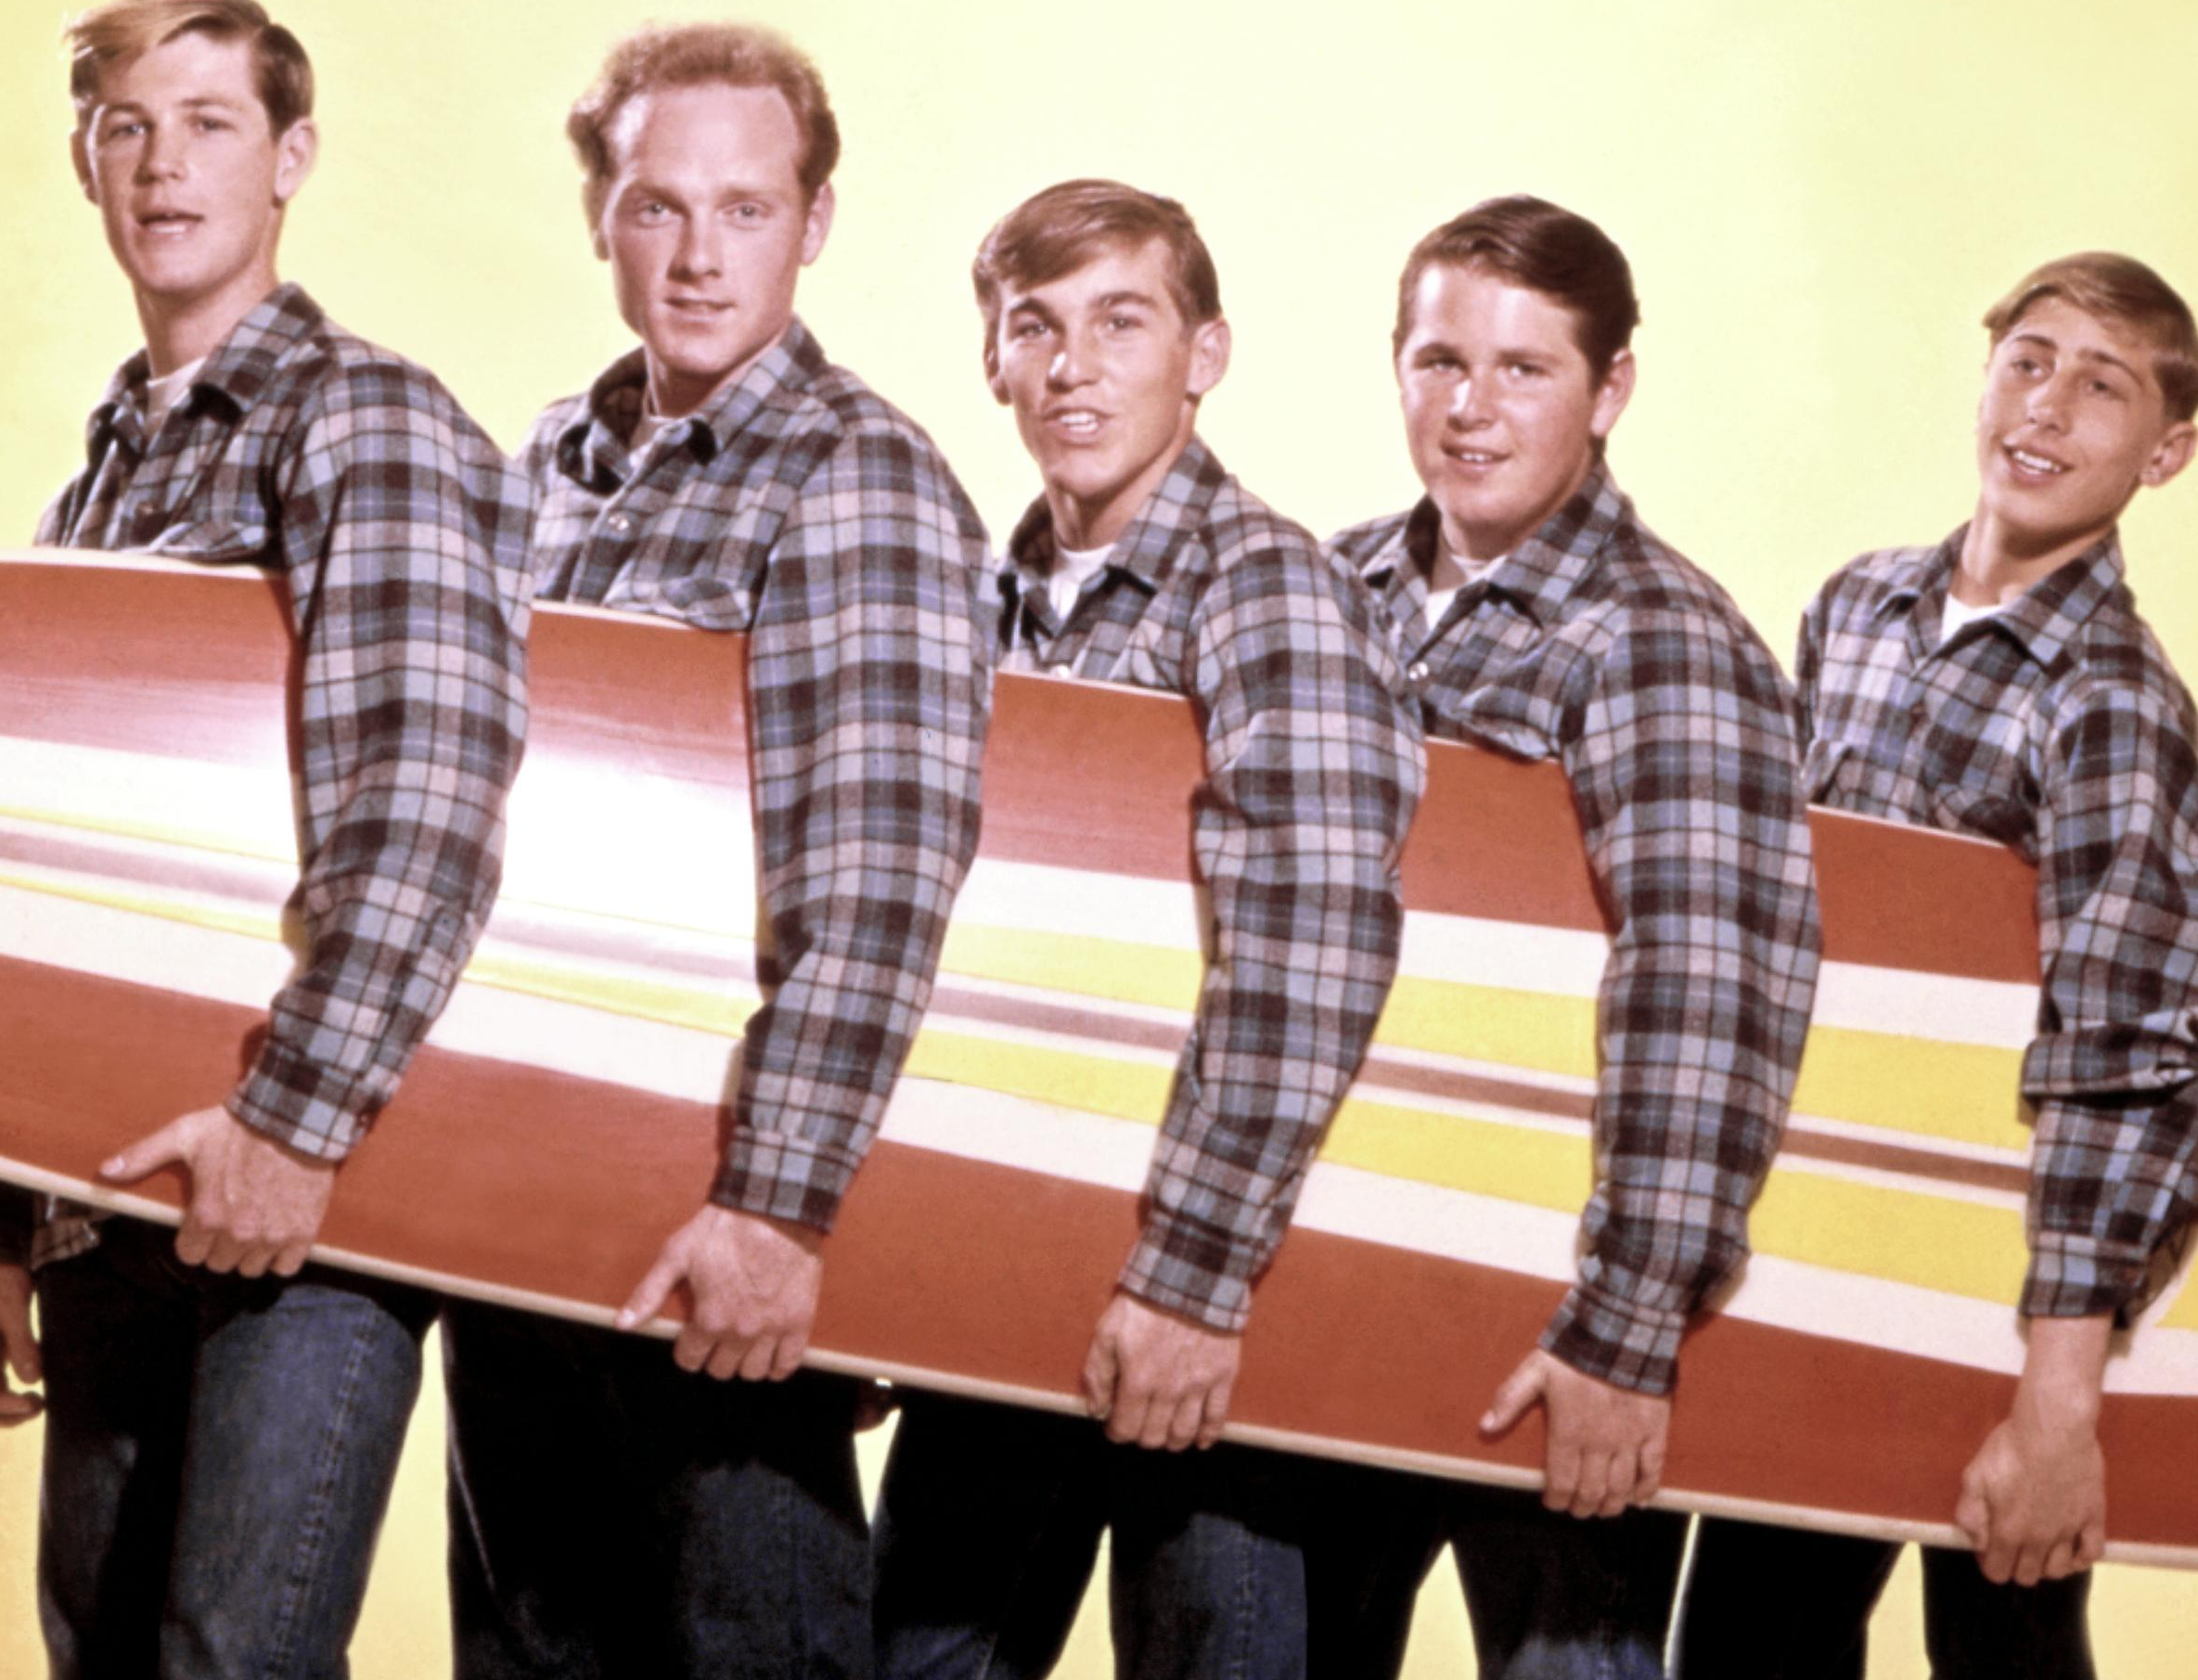 The start of the surf craze, The Beach Boys.